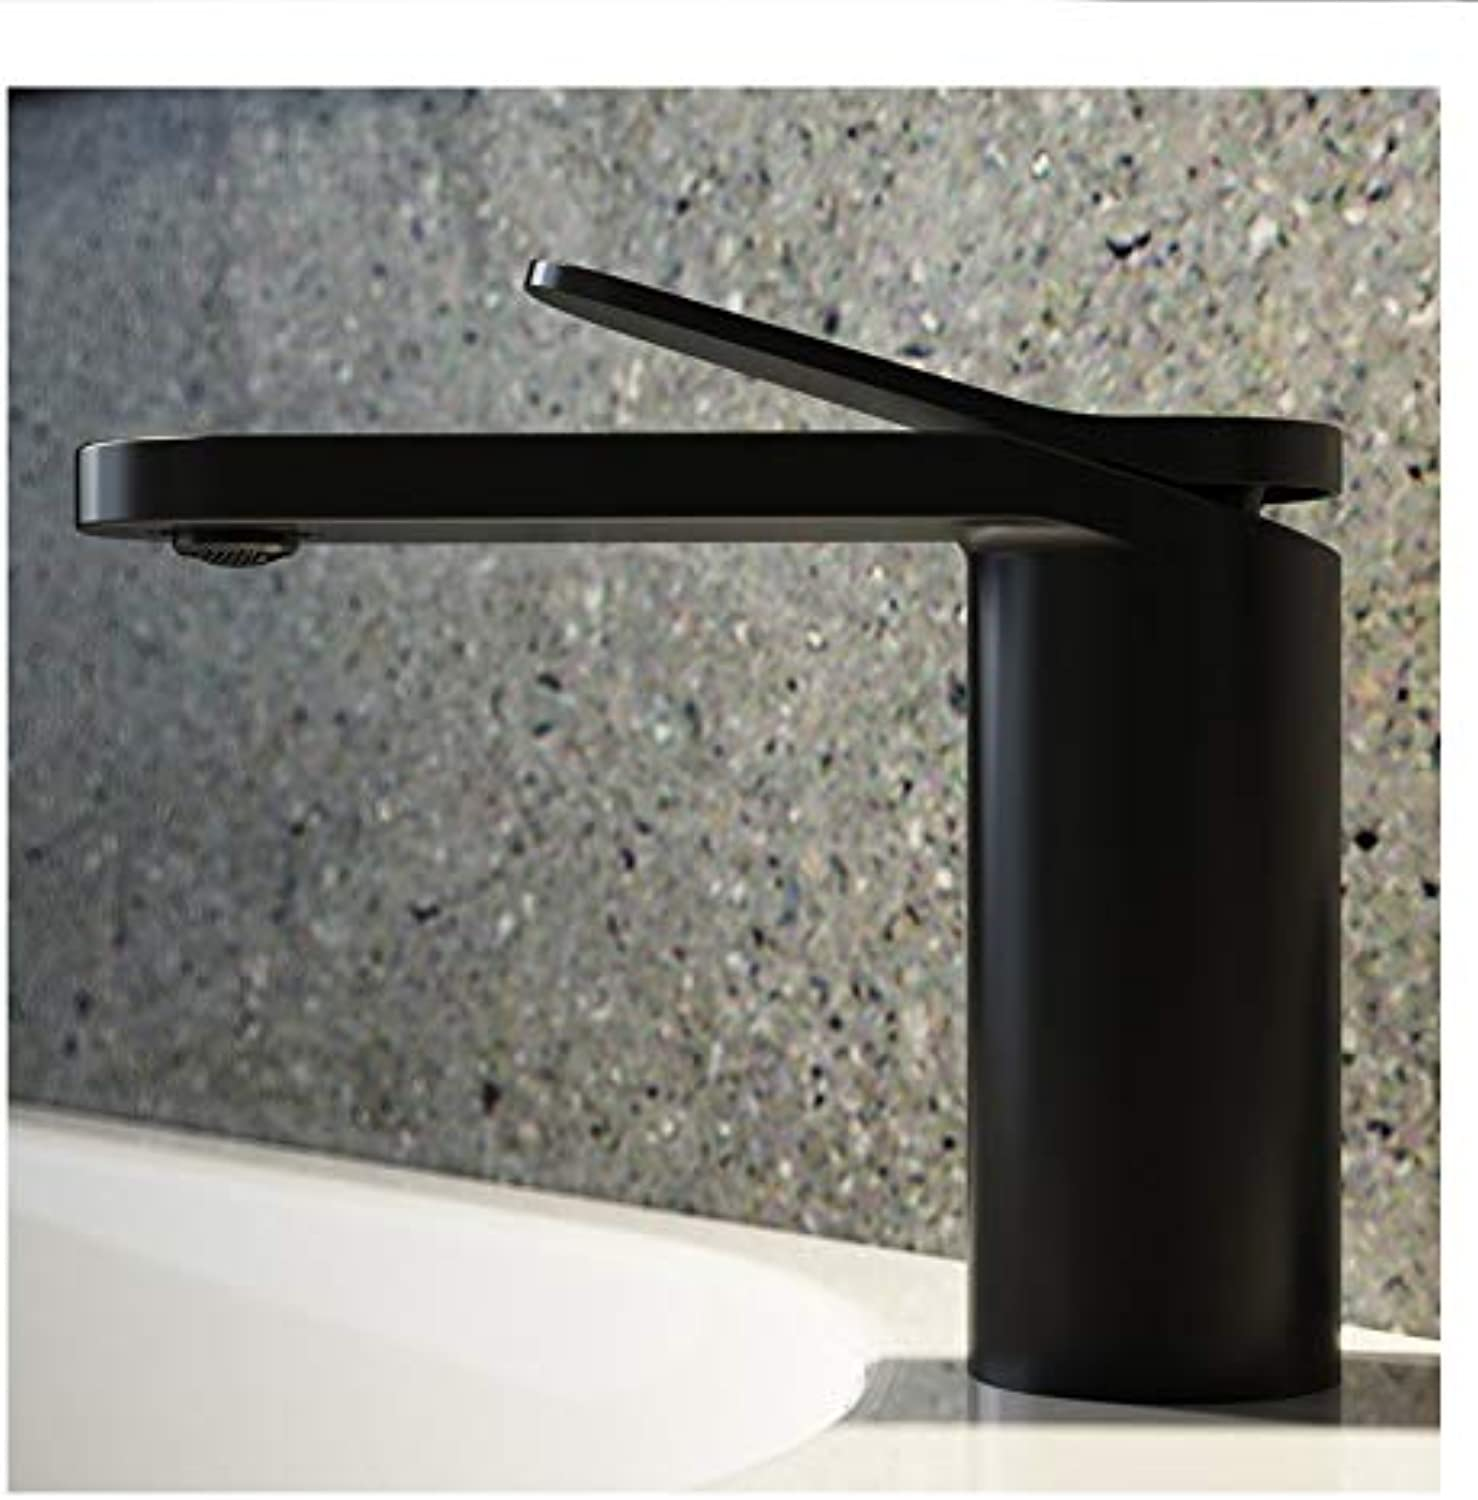 redOOY Taps Matte Black Painted Copper Long Handle Basin Faucet Hotel Bathroom Hot And Cold Mixed Water Wash Basin Faucet